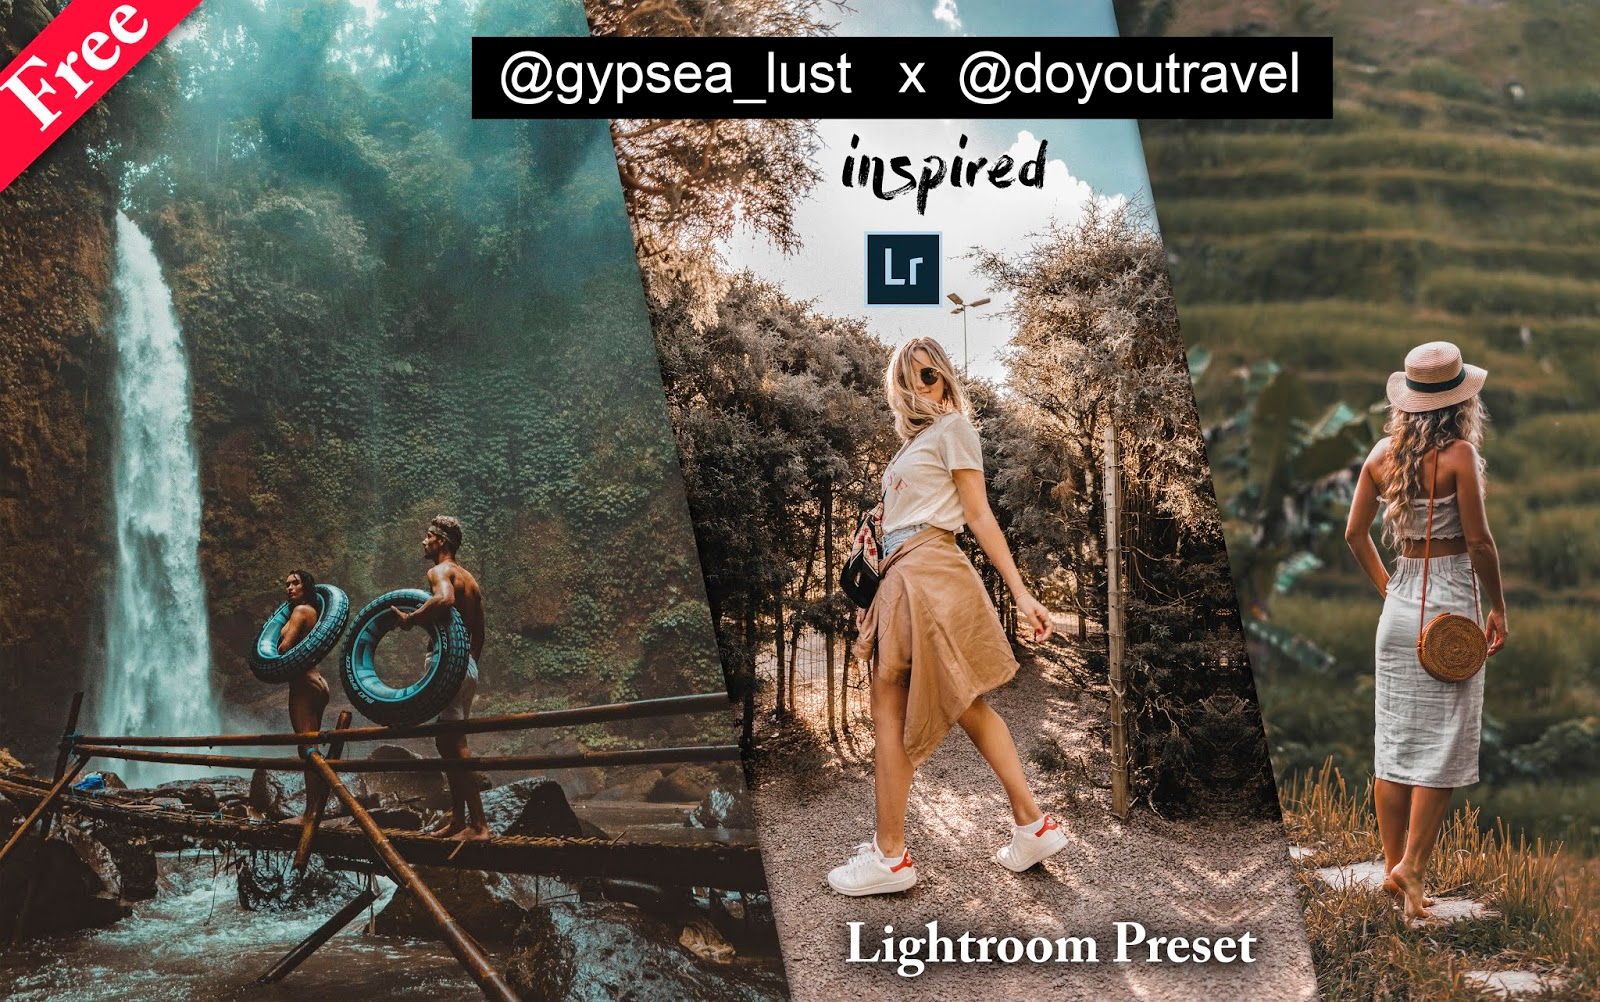 Download Gypsea_Lust Lightroom Preset for Free | How to Edit Photos Like @gypsea_lust in Lightroom